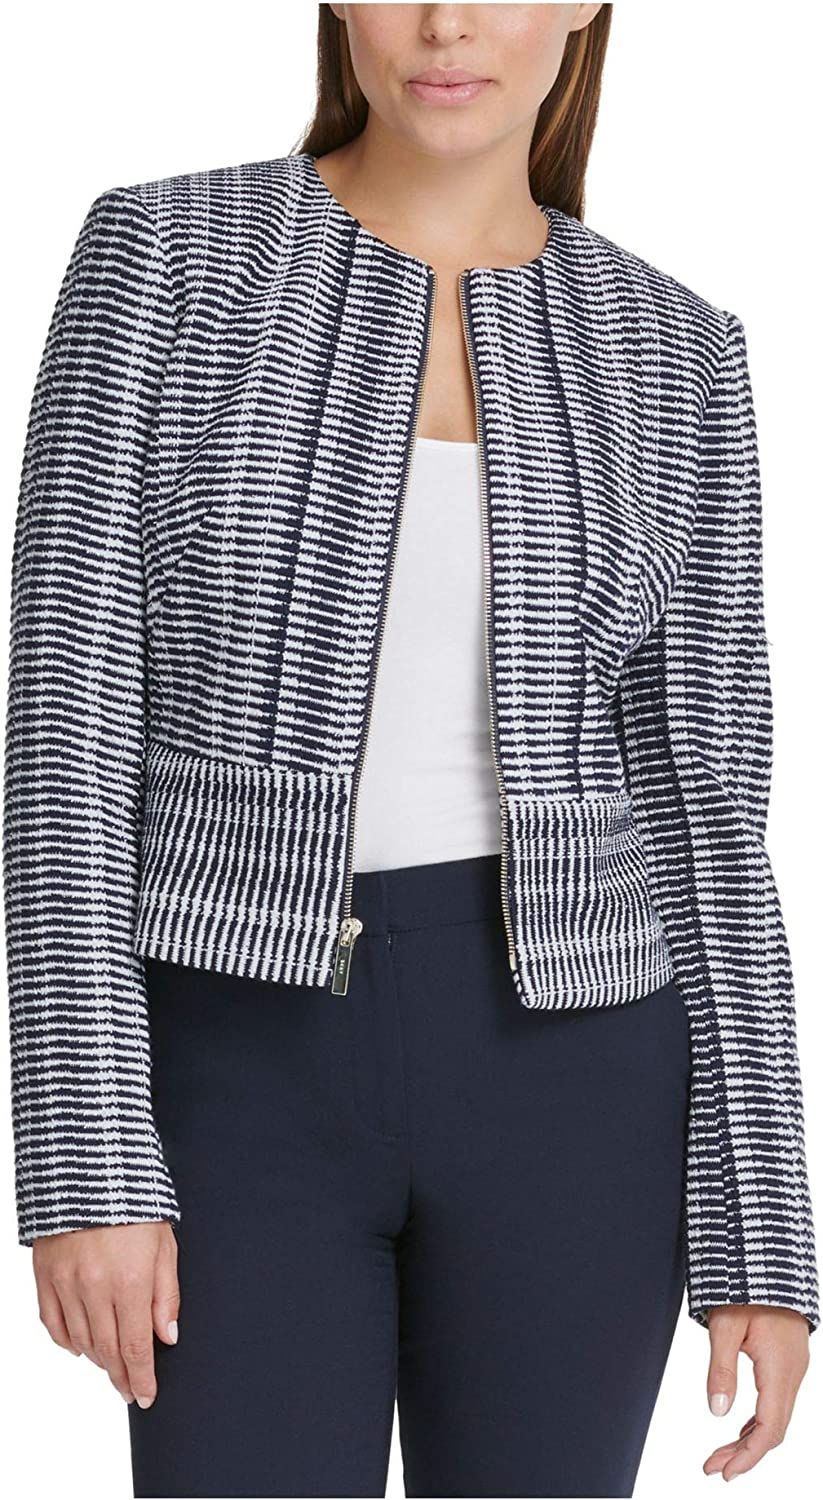 DKNY Womens Blue Printed Zip Up Wear To Work Jacket Size 4